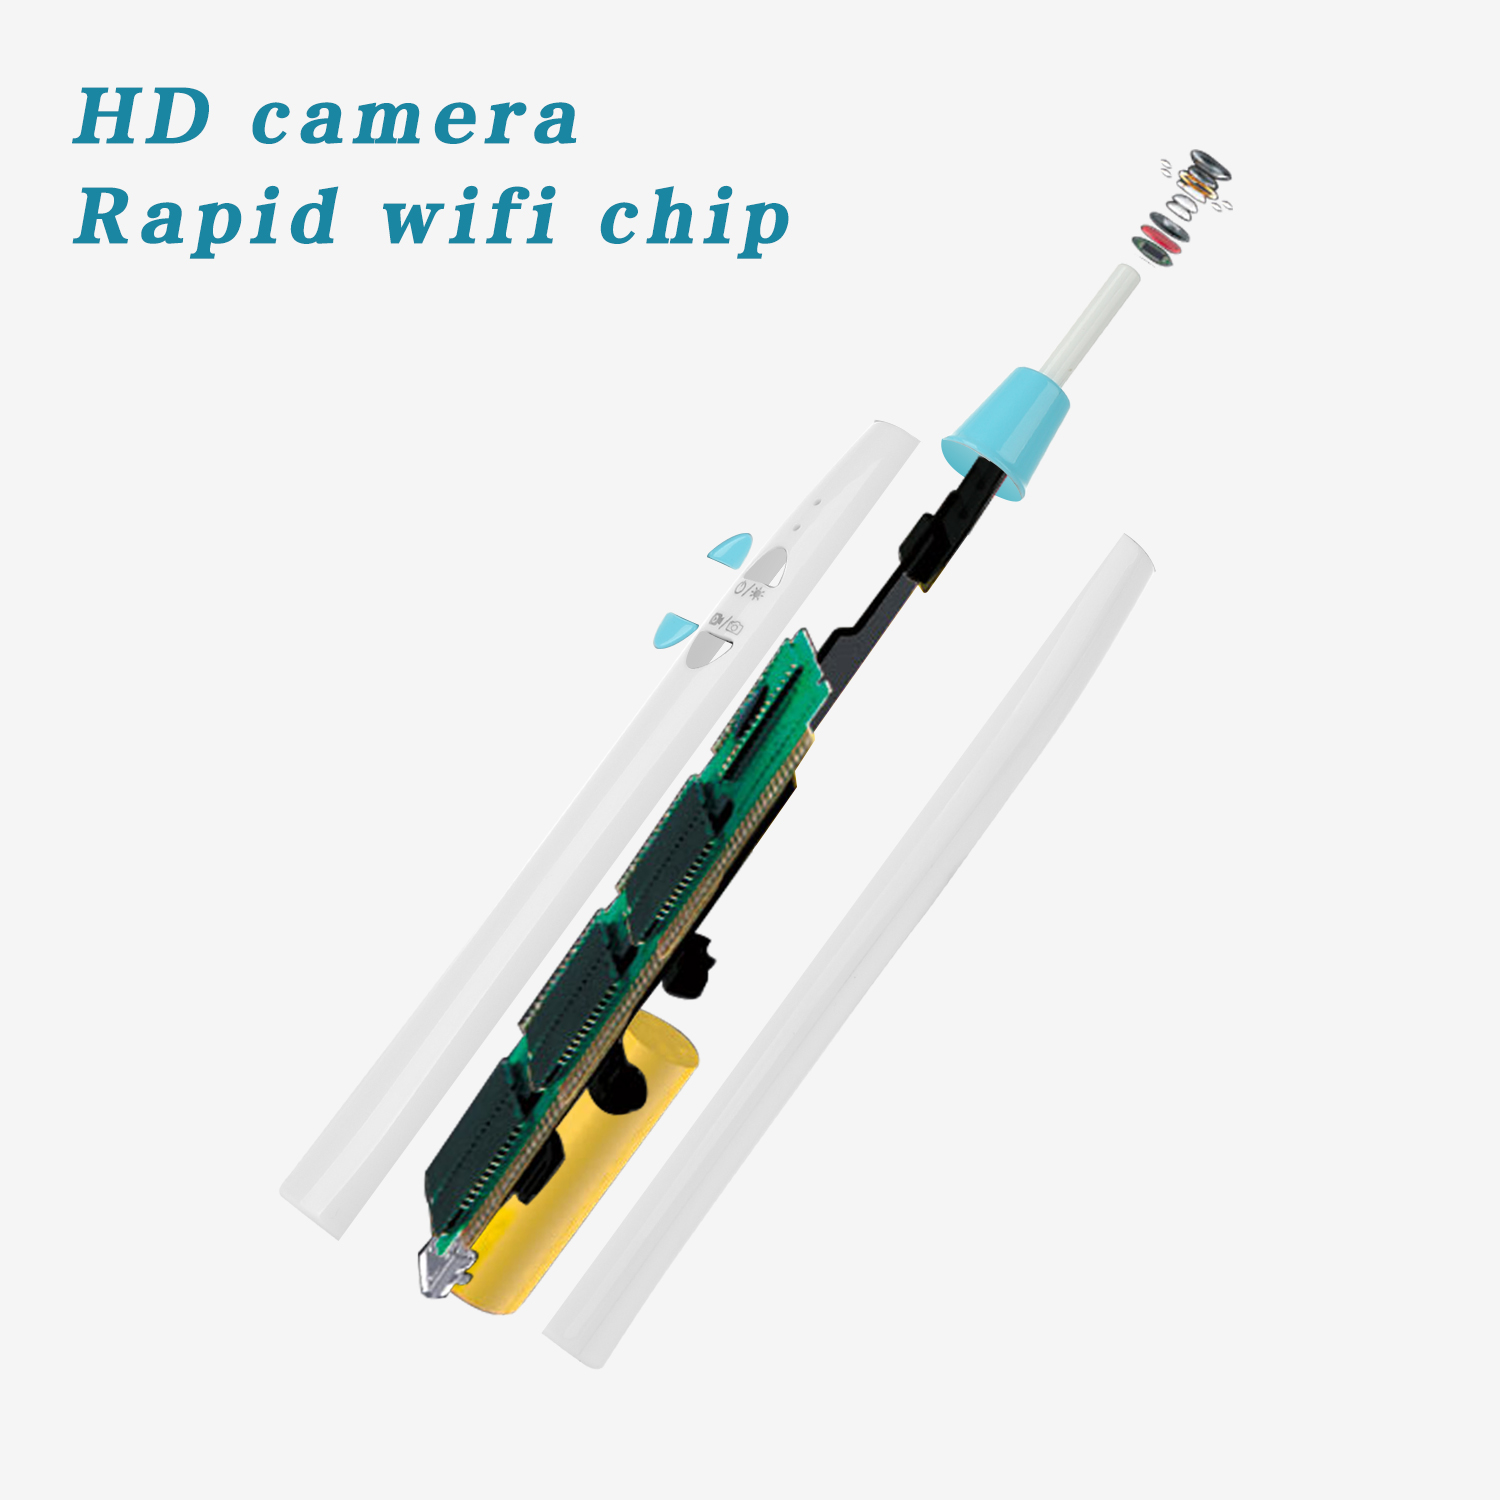 Hot Selling Mini 3.9mm Electronic Otoscope WiFi Ear Camera Endoscope